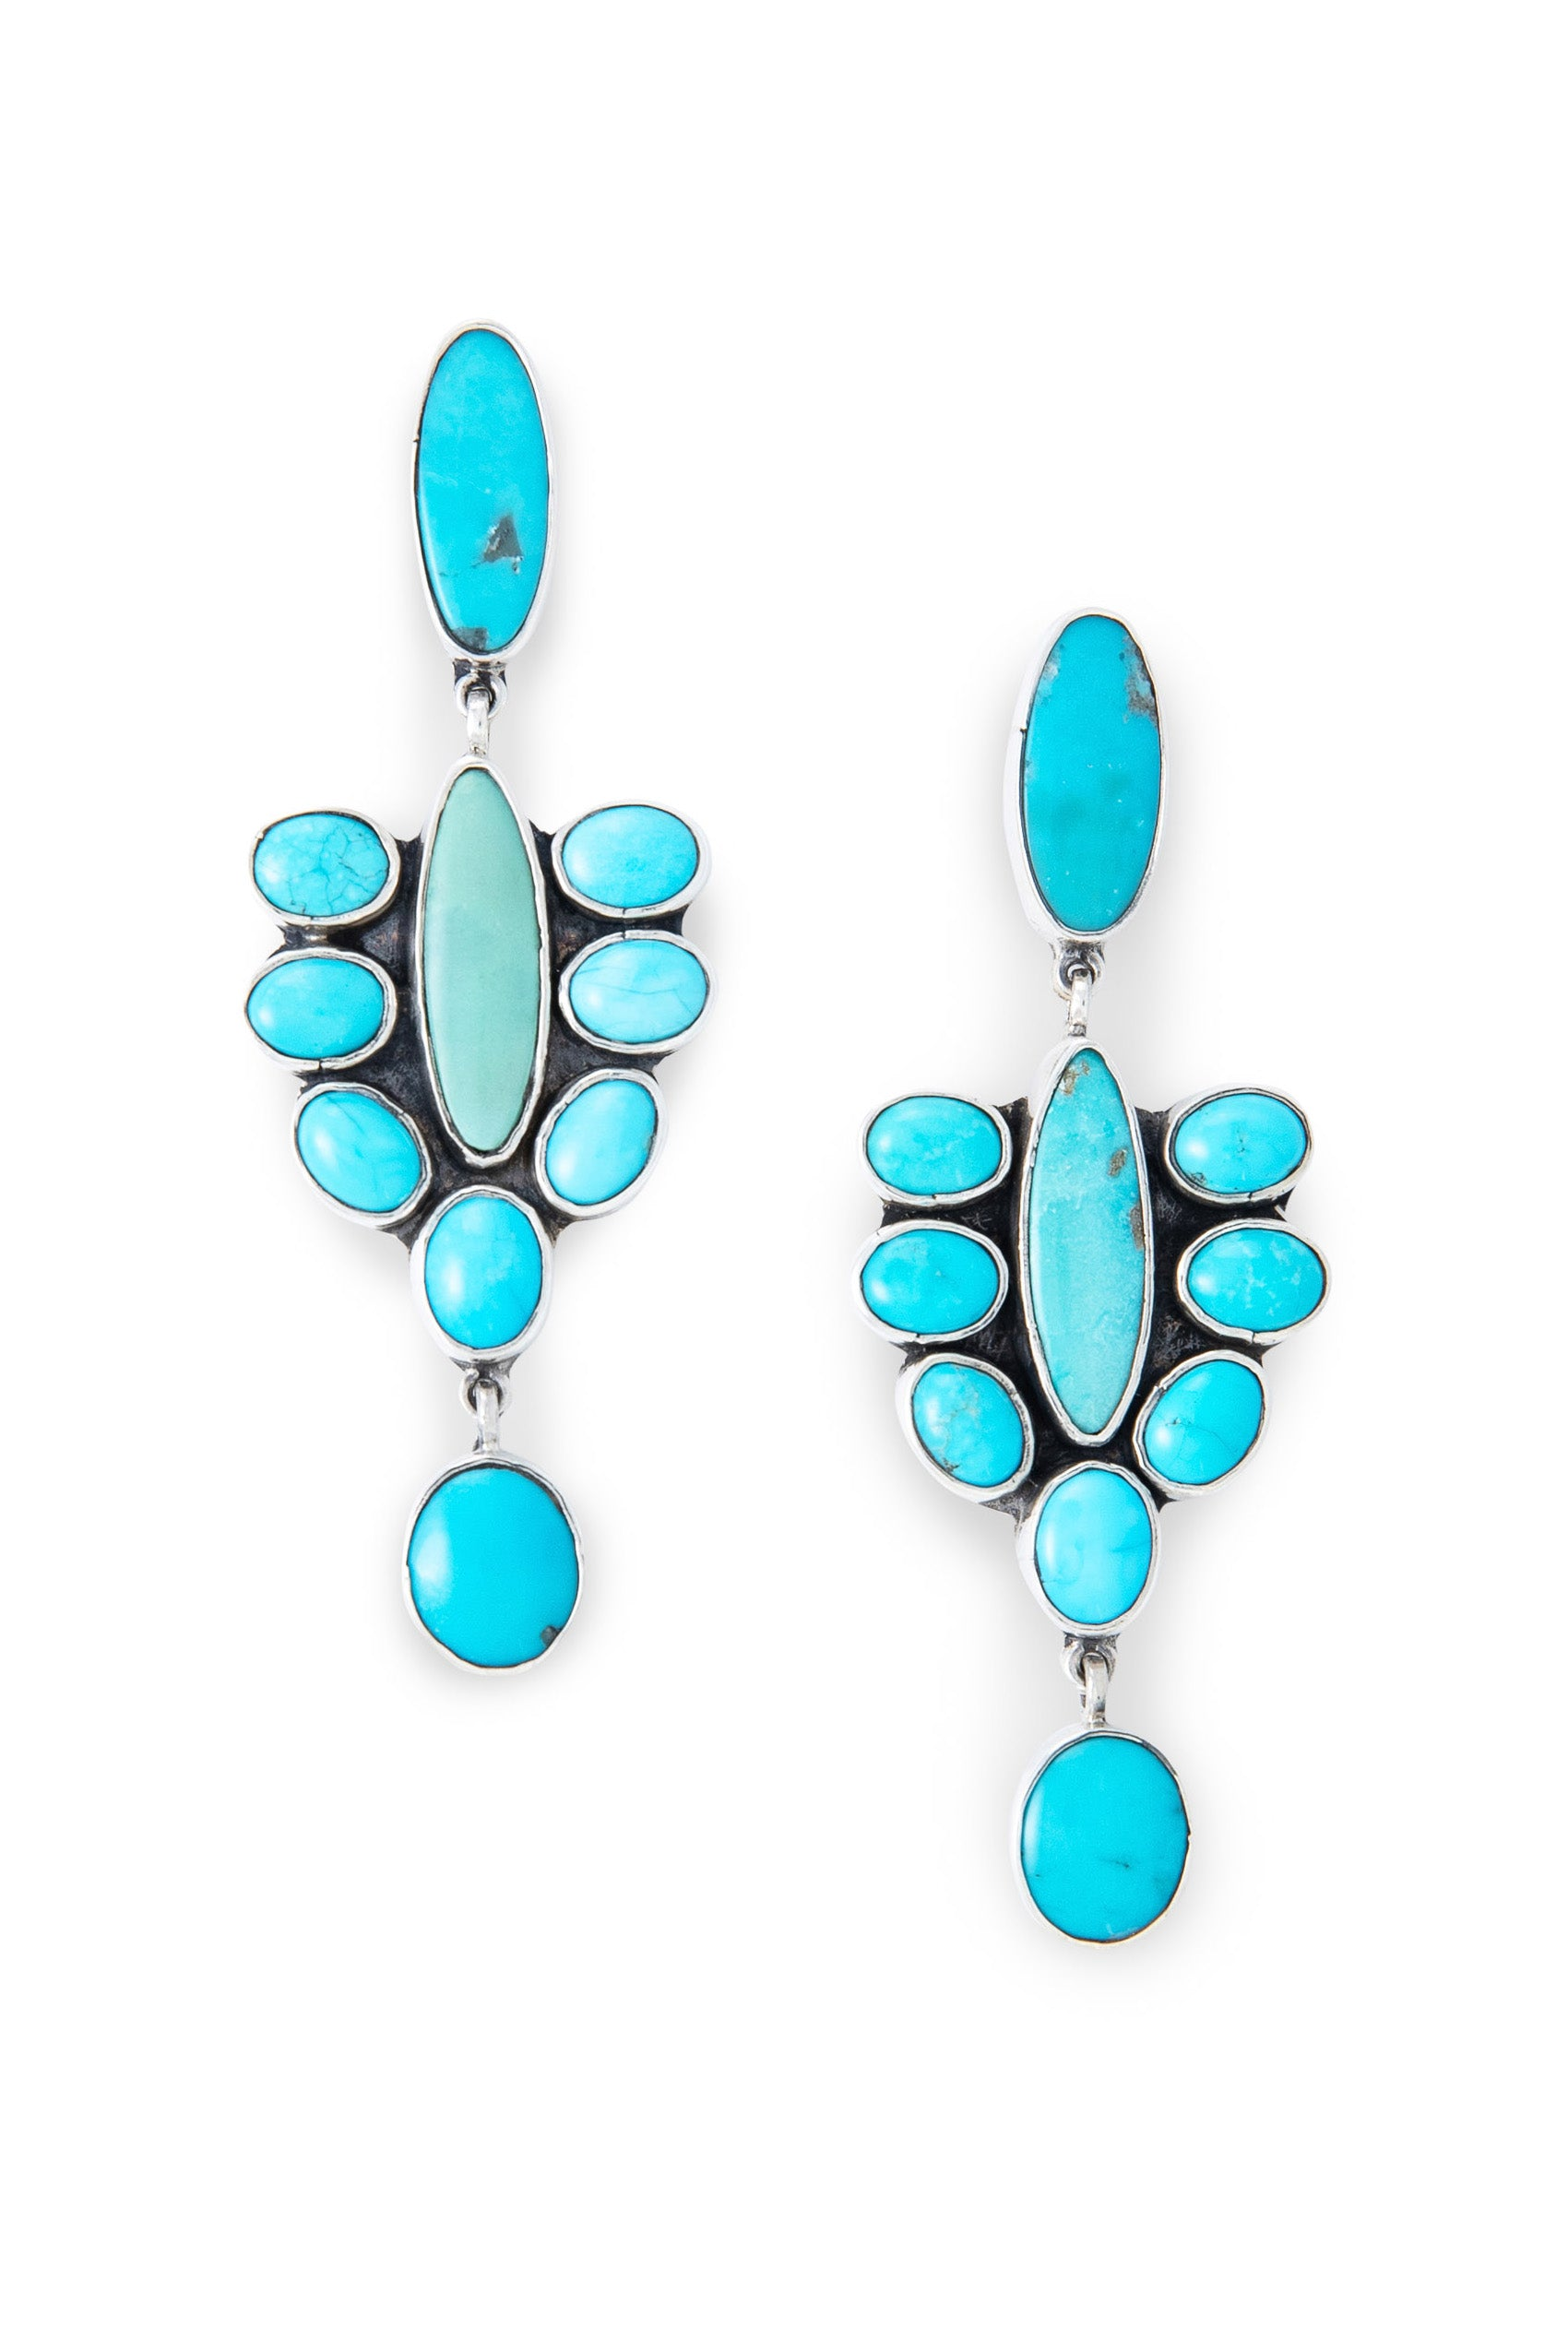 Earrings, Drop, Turquoise, Federico, Comtemporary, 537